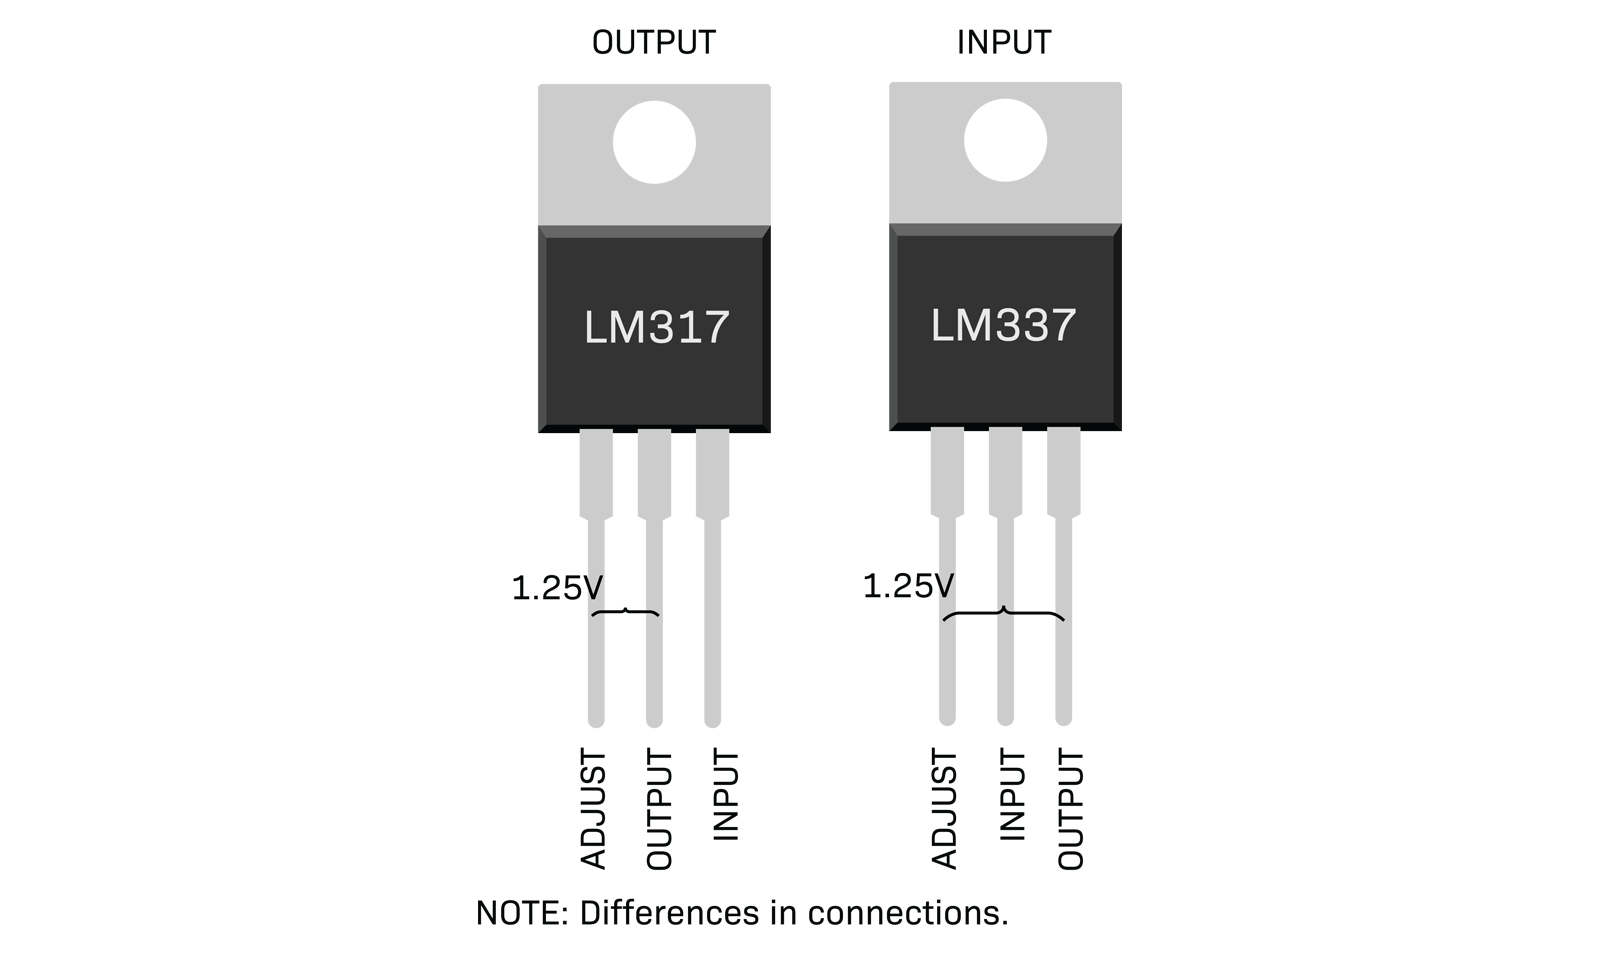 Part 3 The Linear Power Supply Diyode Magazine Single Polarity By Ic Lm741 Pin Out Of Lm317 And Lm337